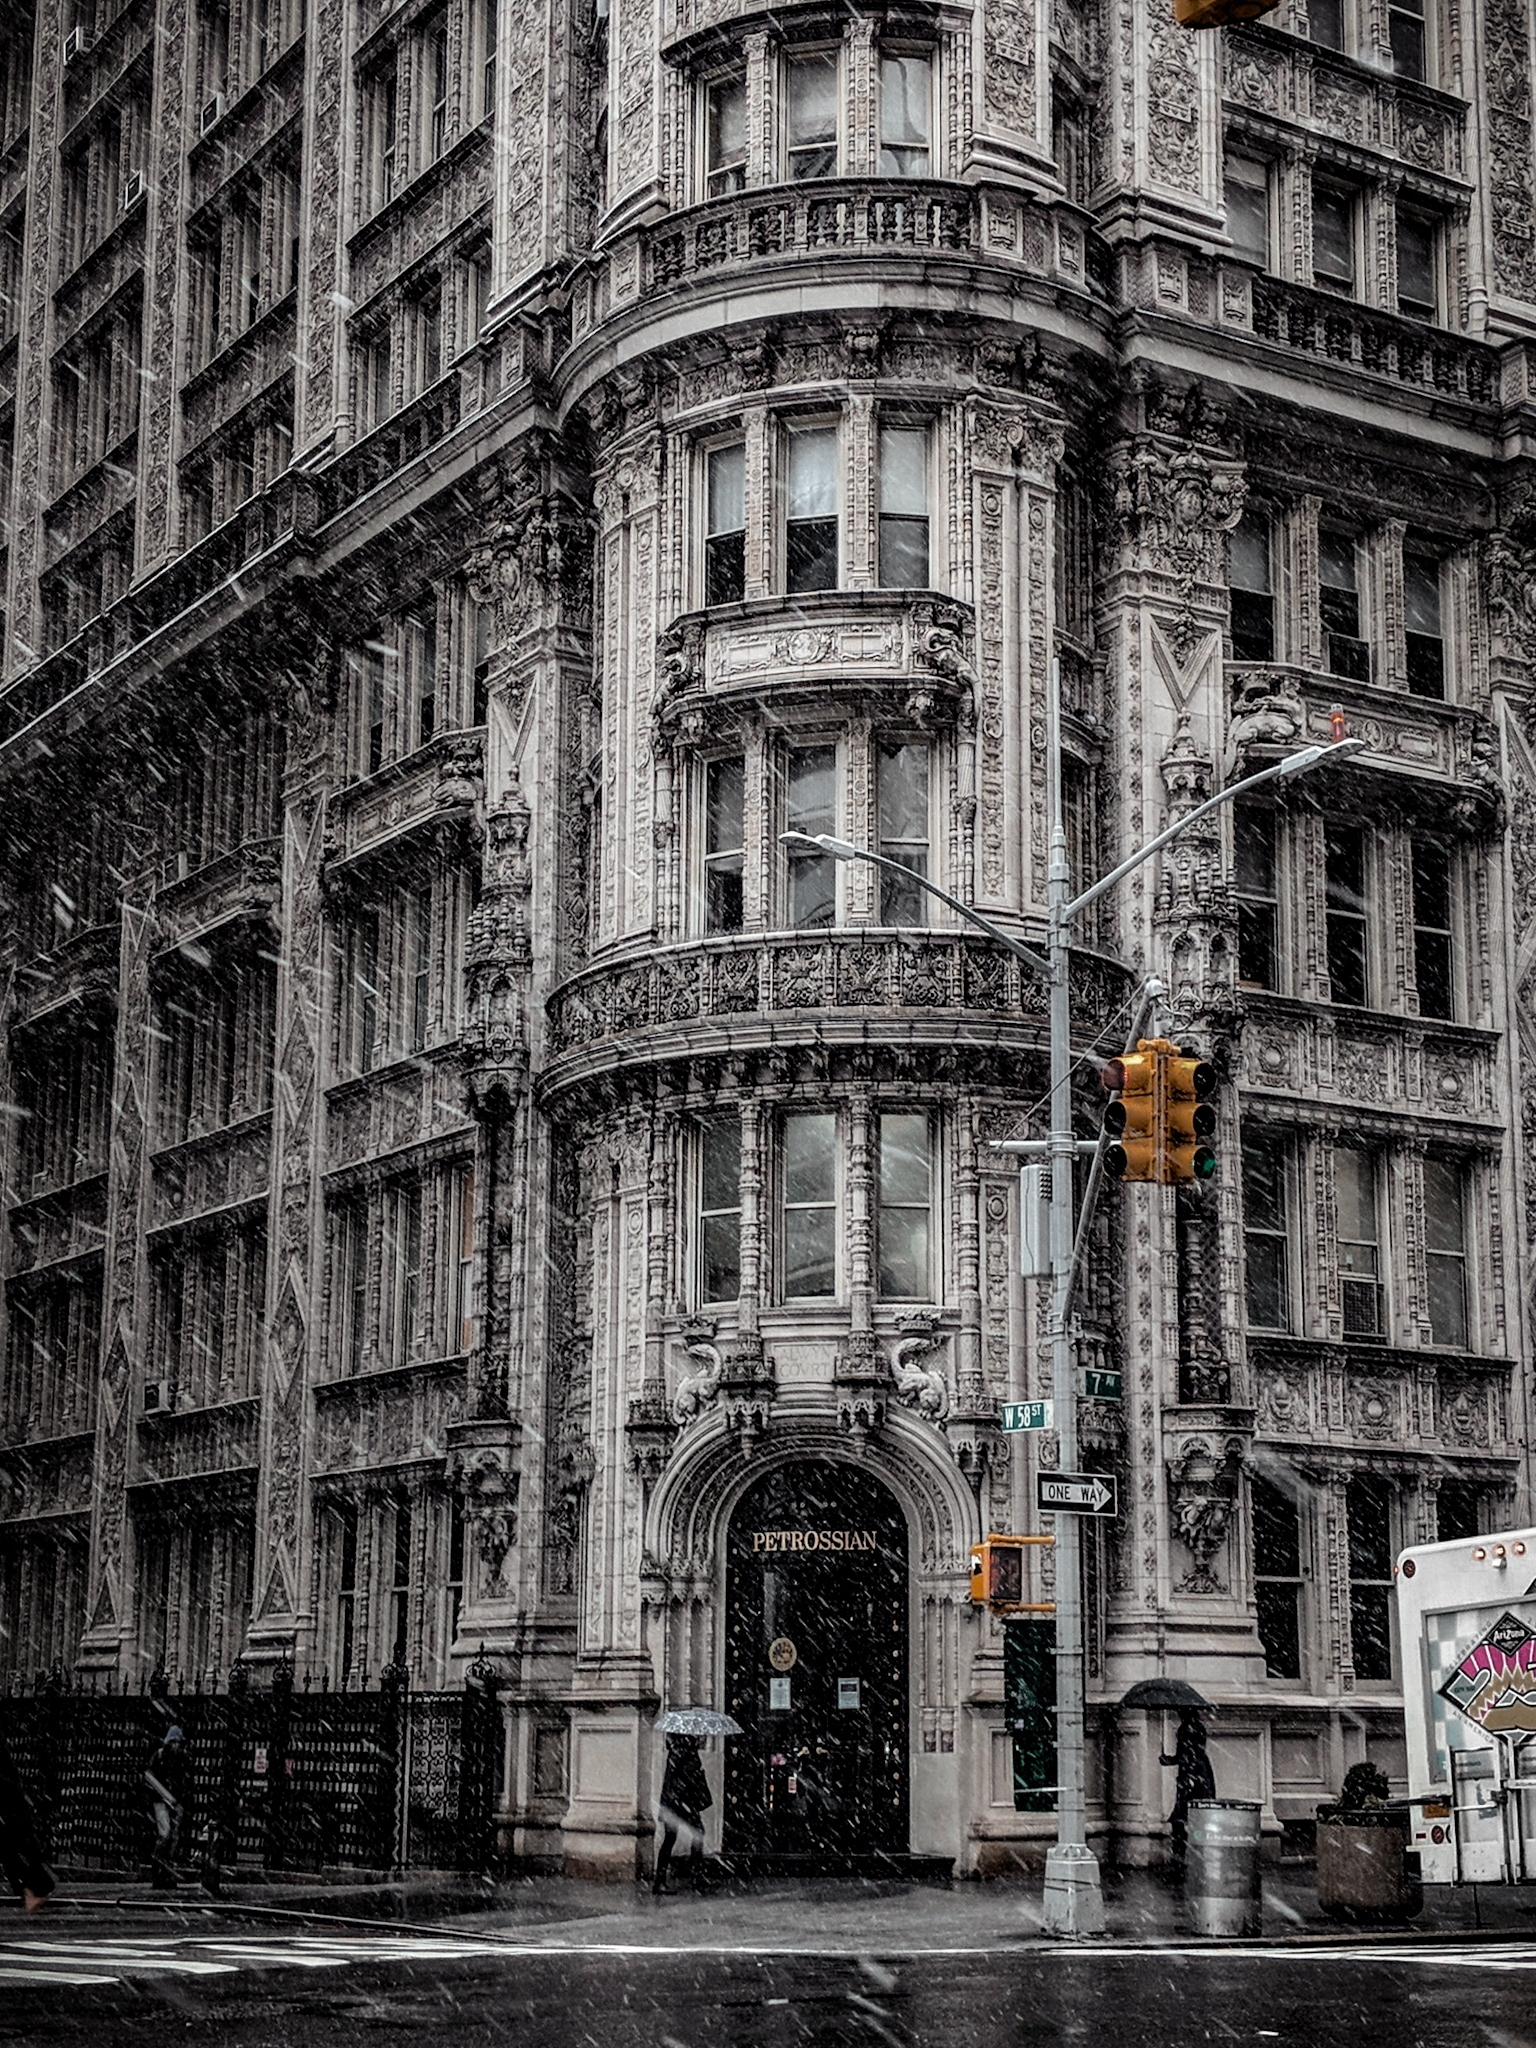 One of the most photographed buildings on the West Side....I mean c'mon!